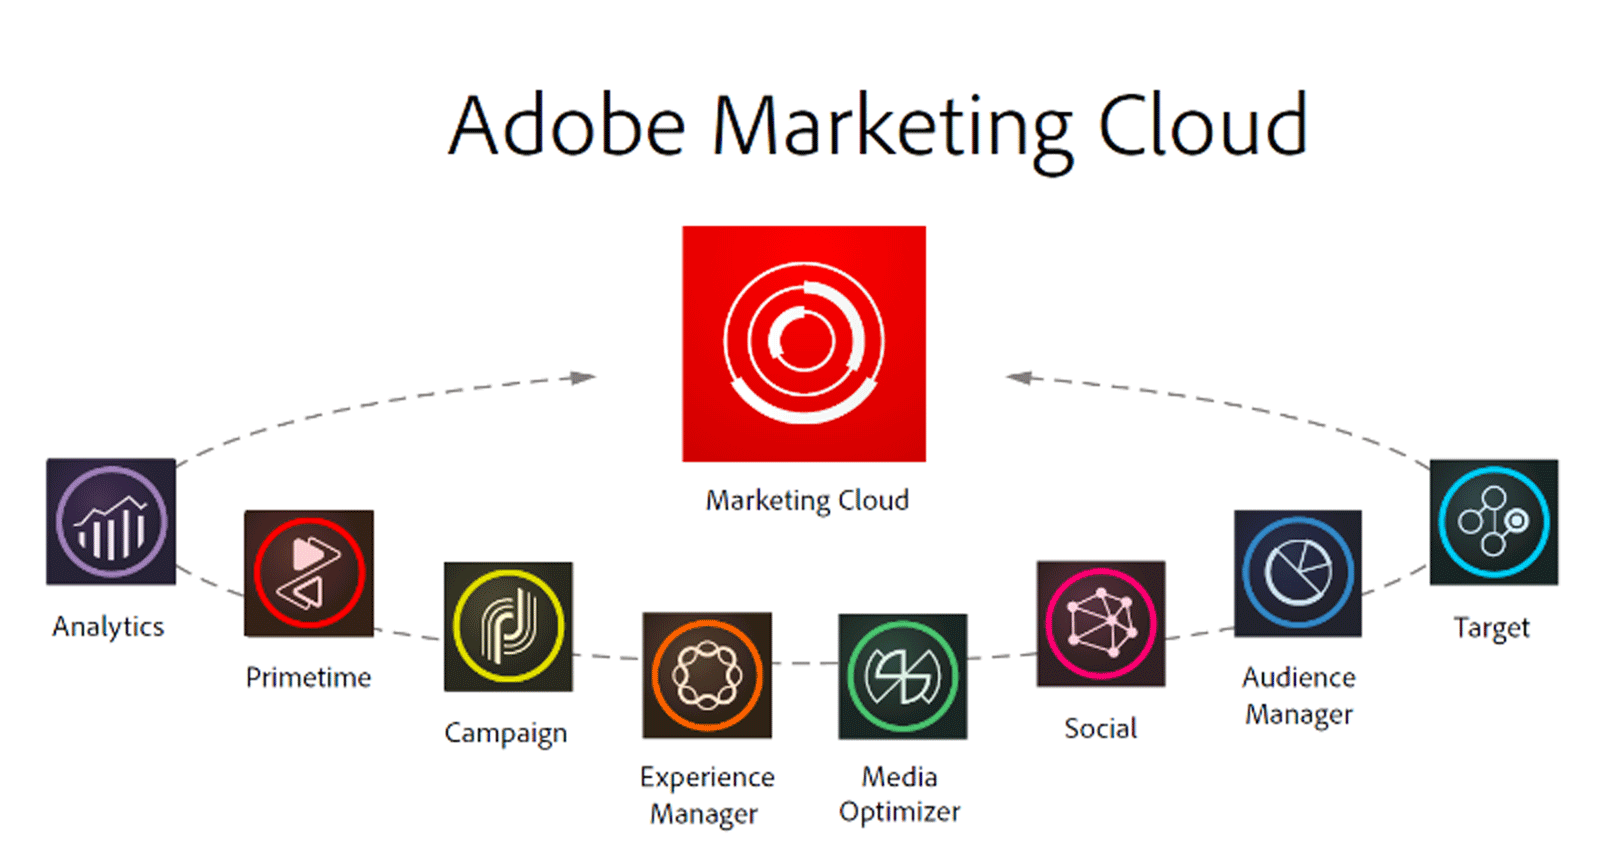 Adobe_Marketing_Cloud-1.png